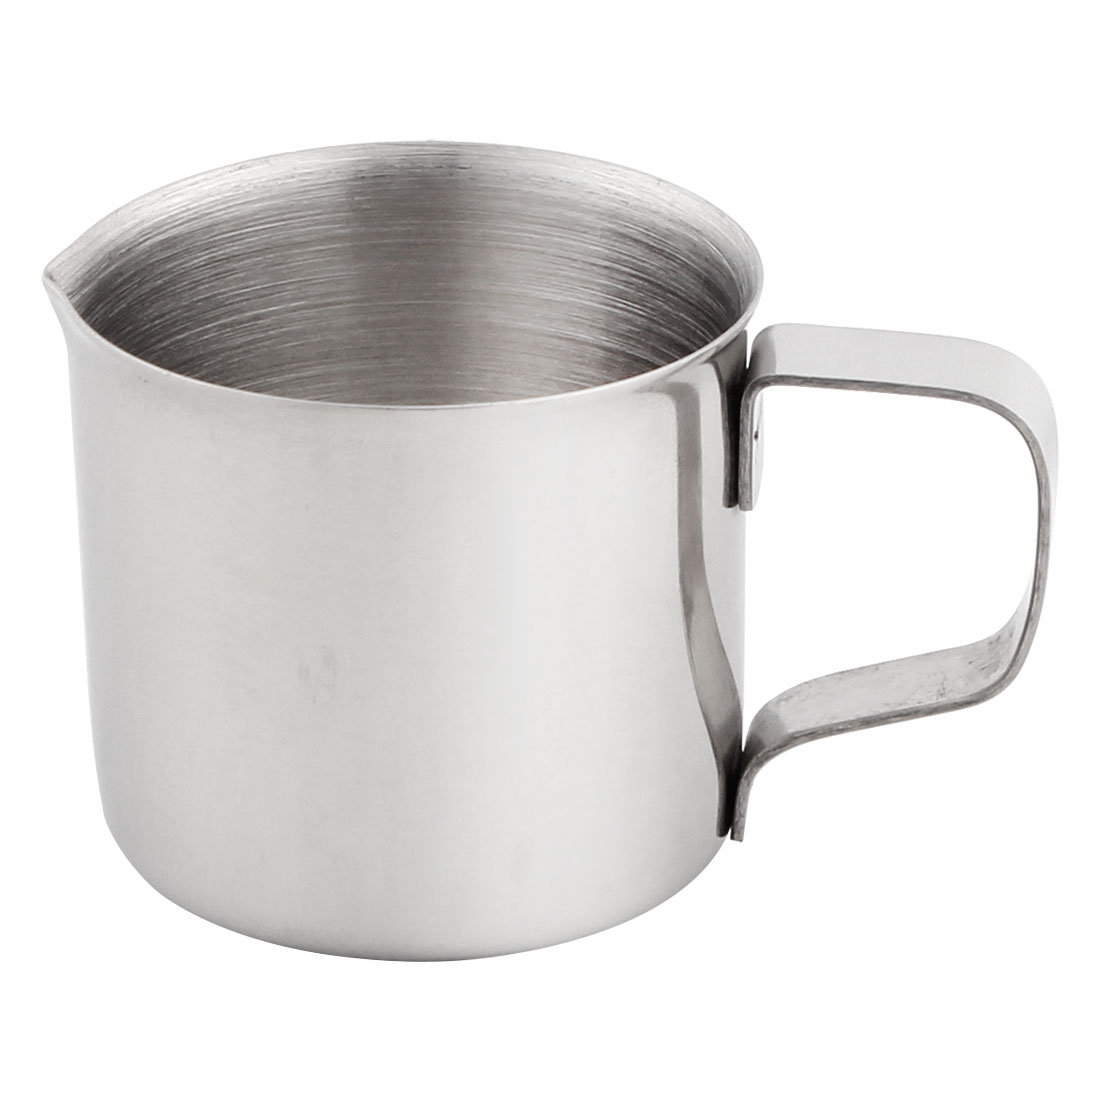 Kitchen Laboratory Stainless Steel Handle Water Liquid Measurement Cup Mug 1 Ounce